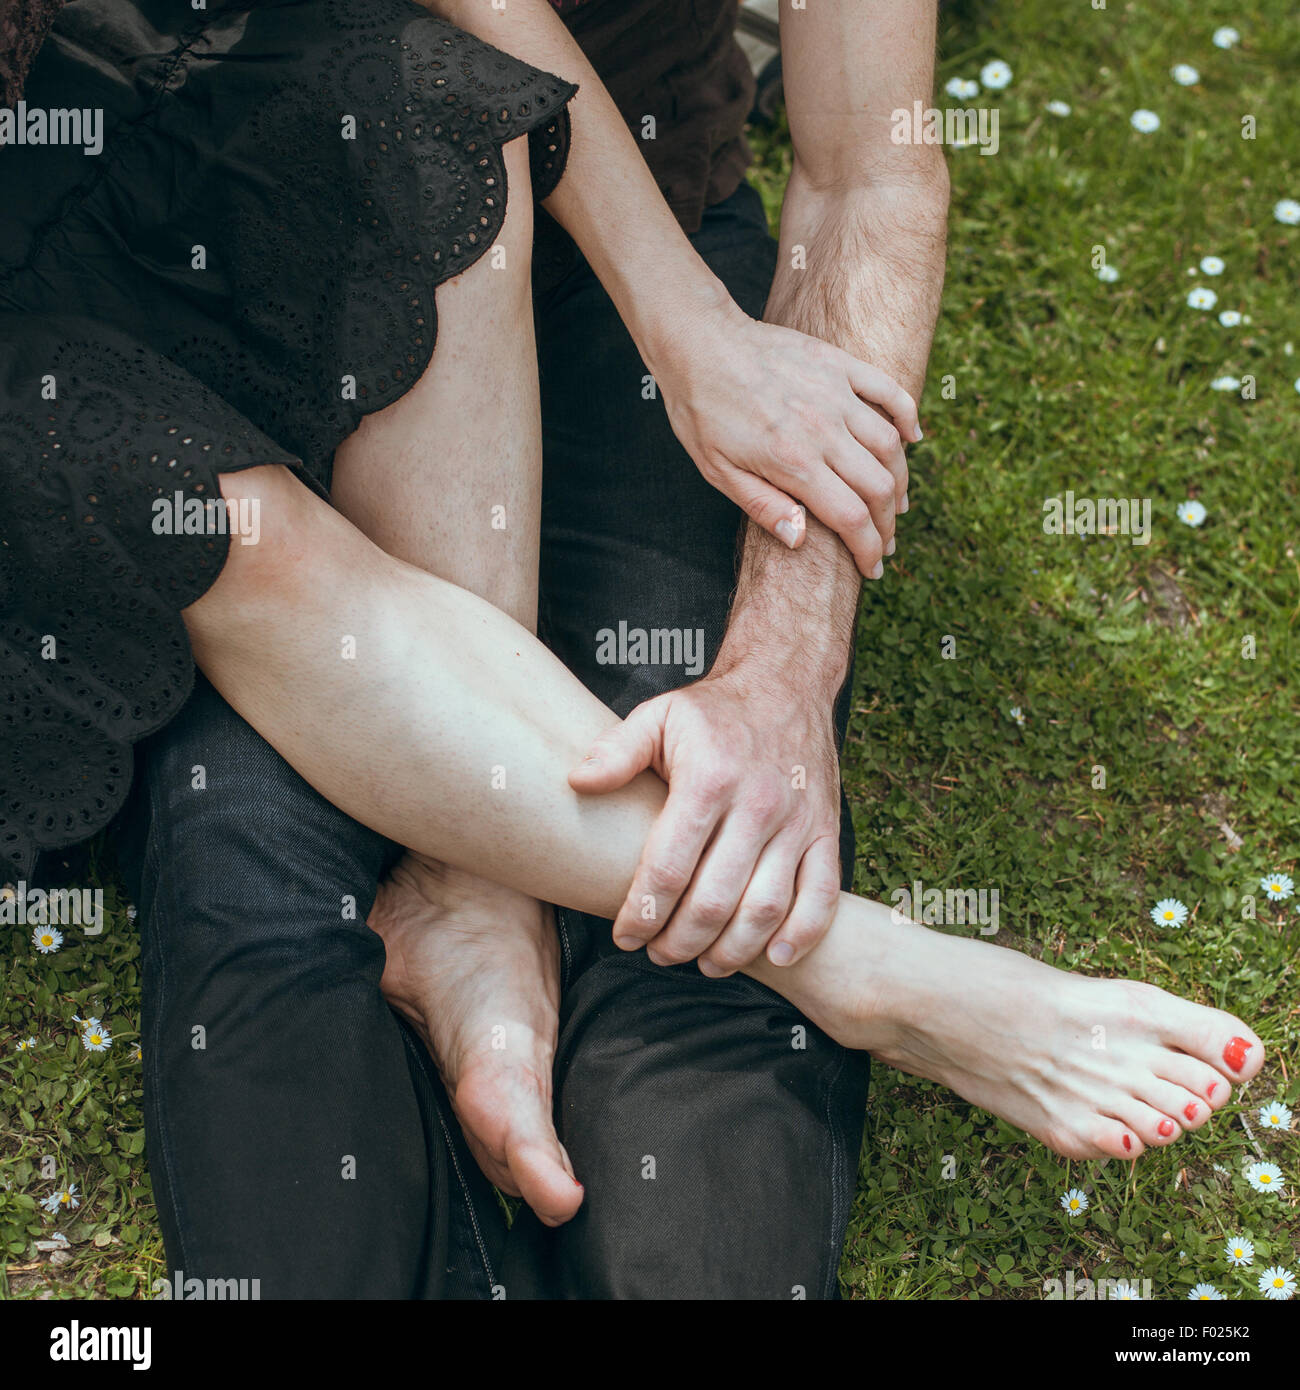 Close up of mature man holding a mature woman's feet in his hand - Stock Image